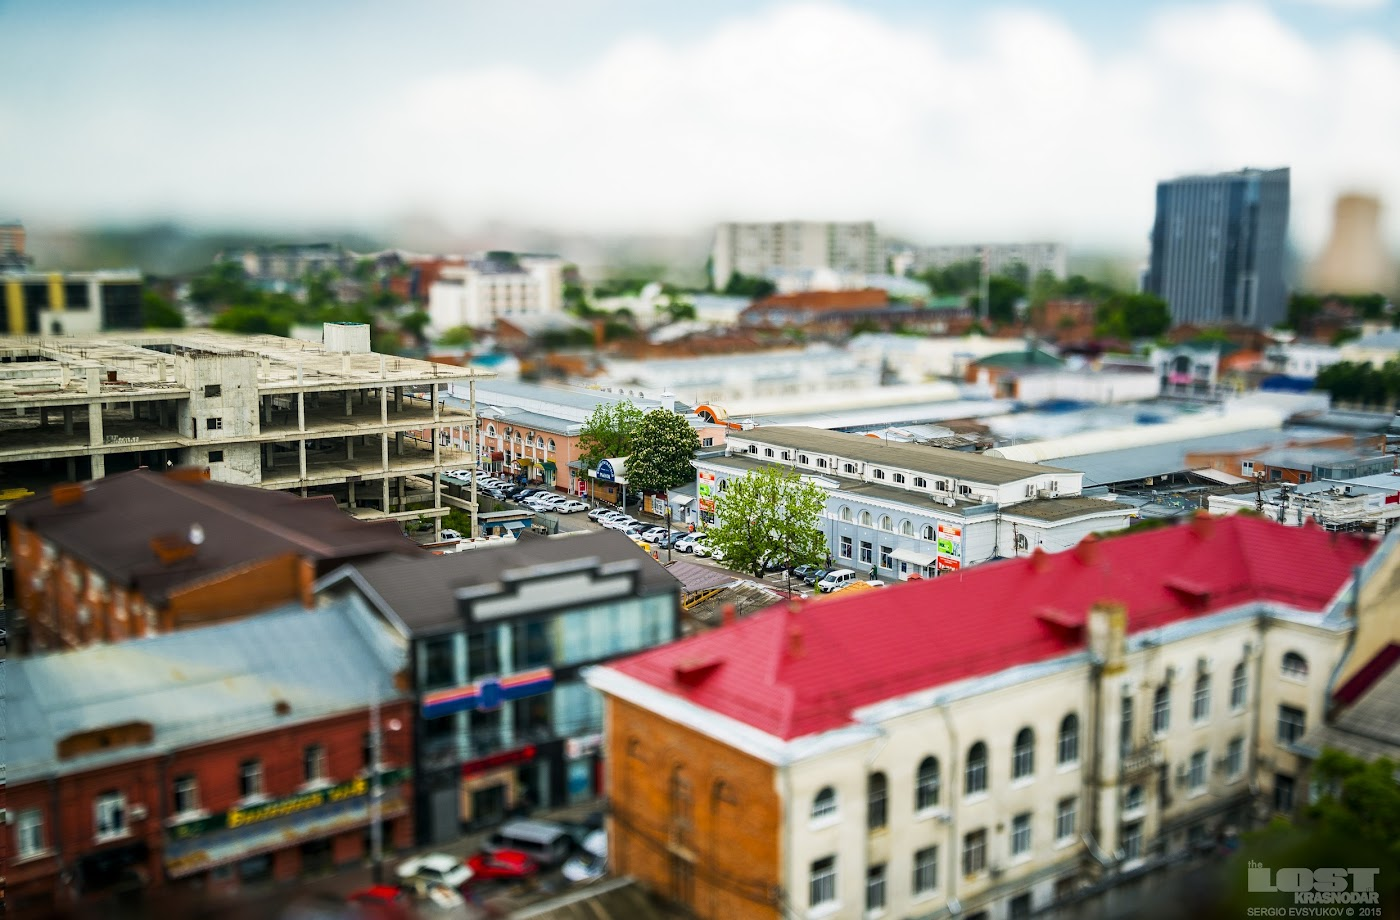 Krasnodar Tilt–shift